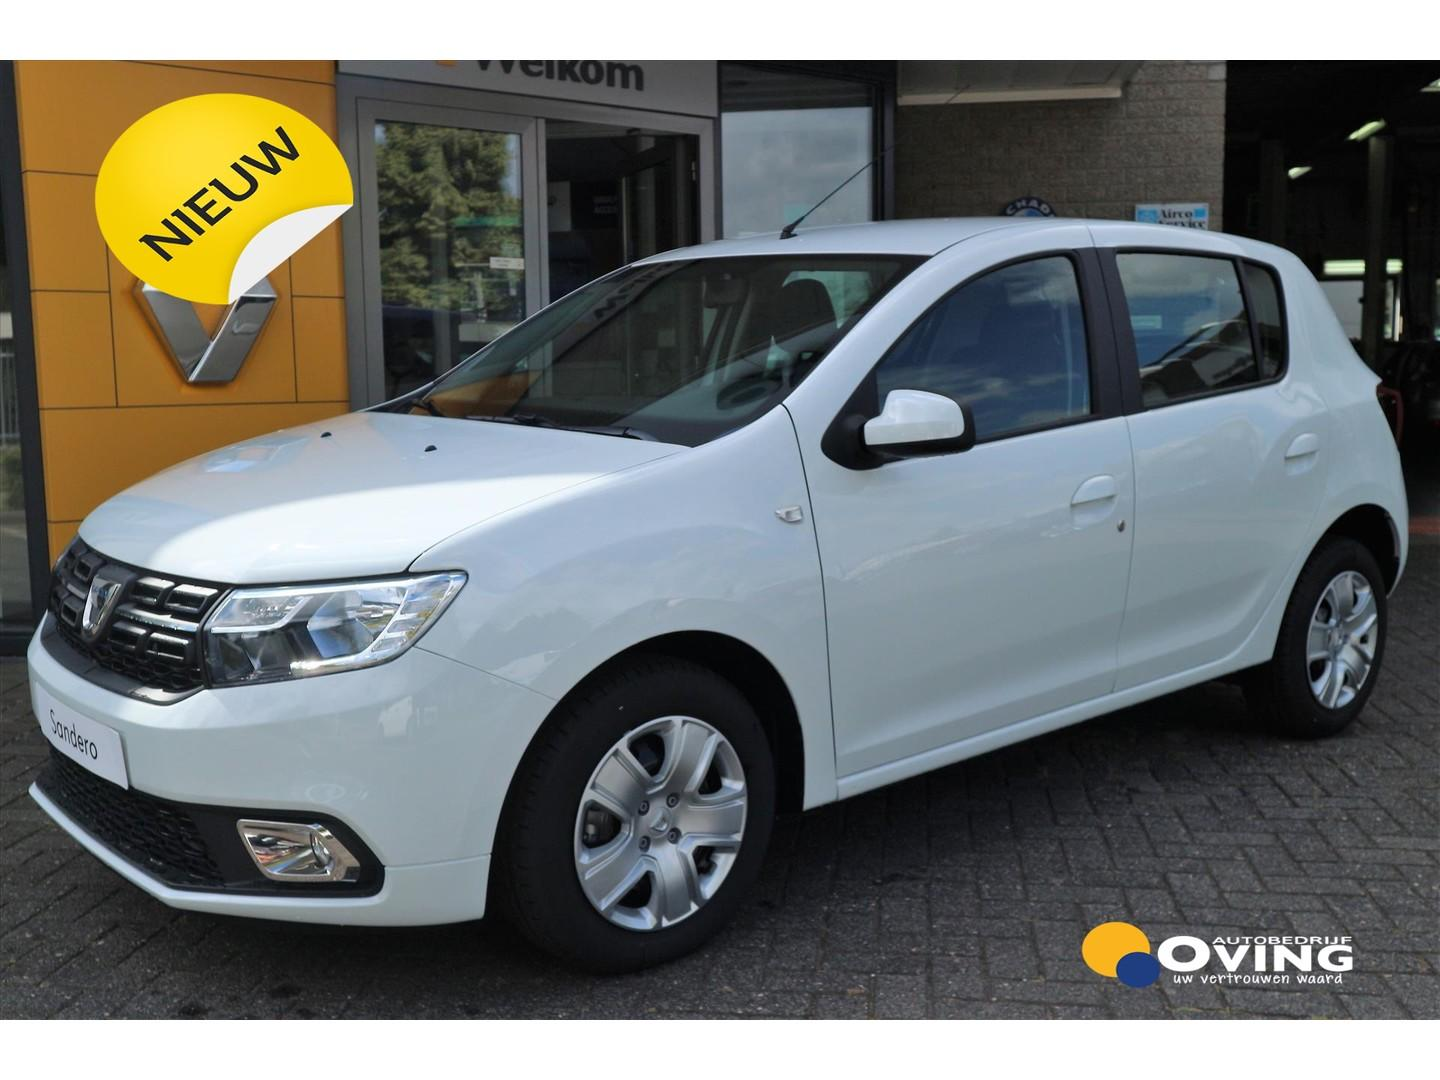 Dacia Sandero 1.0 74 pk laureate **private lease va. € 229,-** fin va. 2,9%*